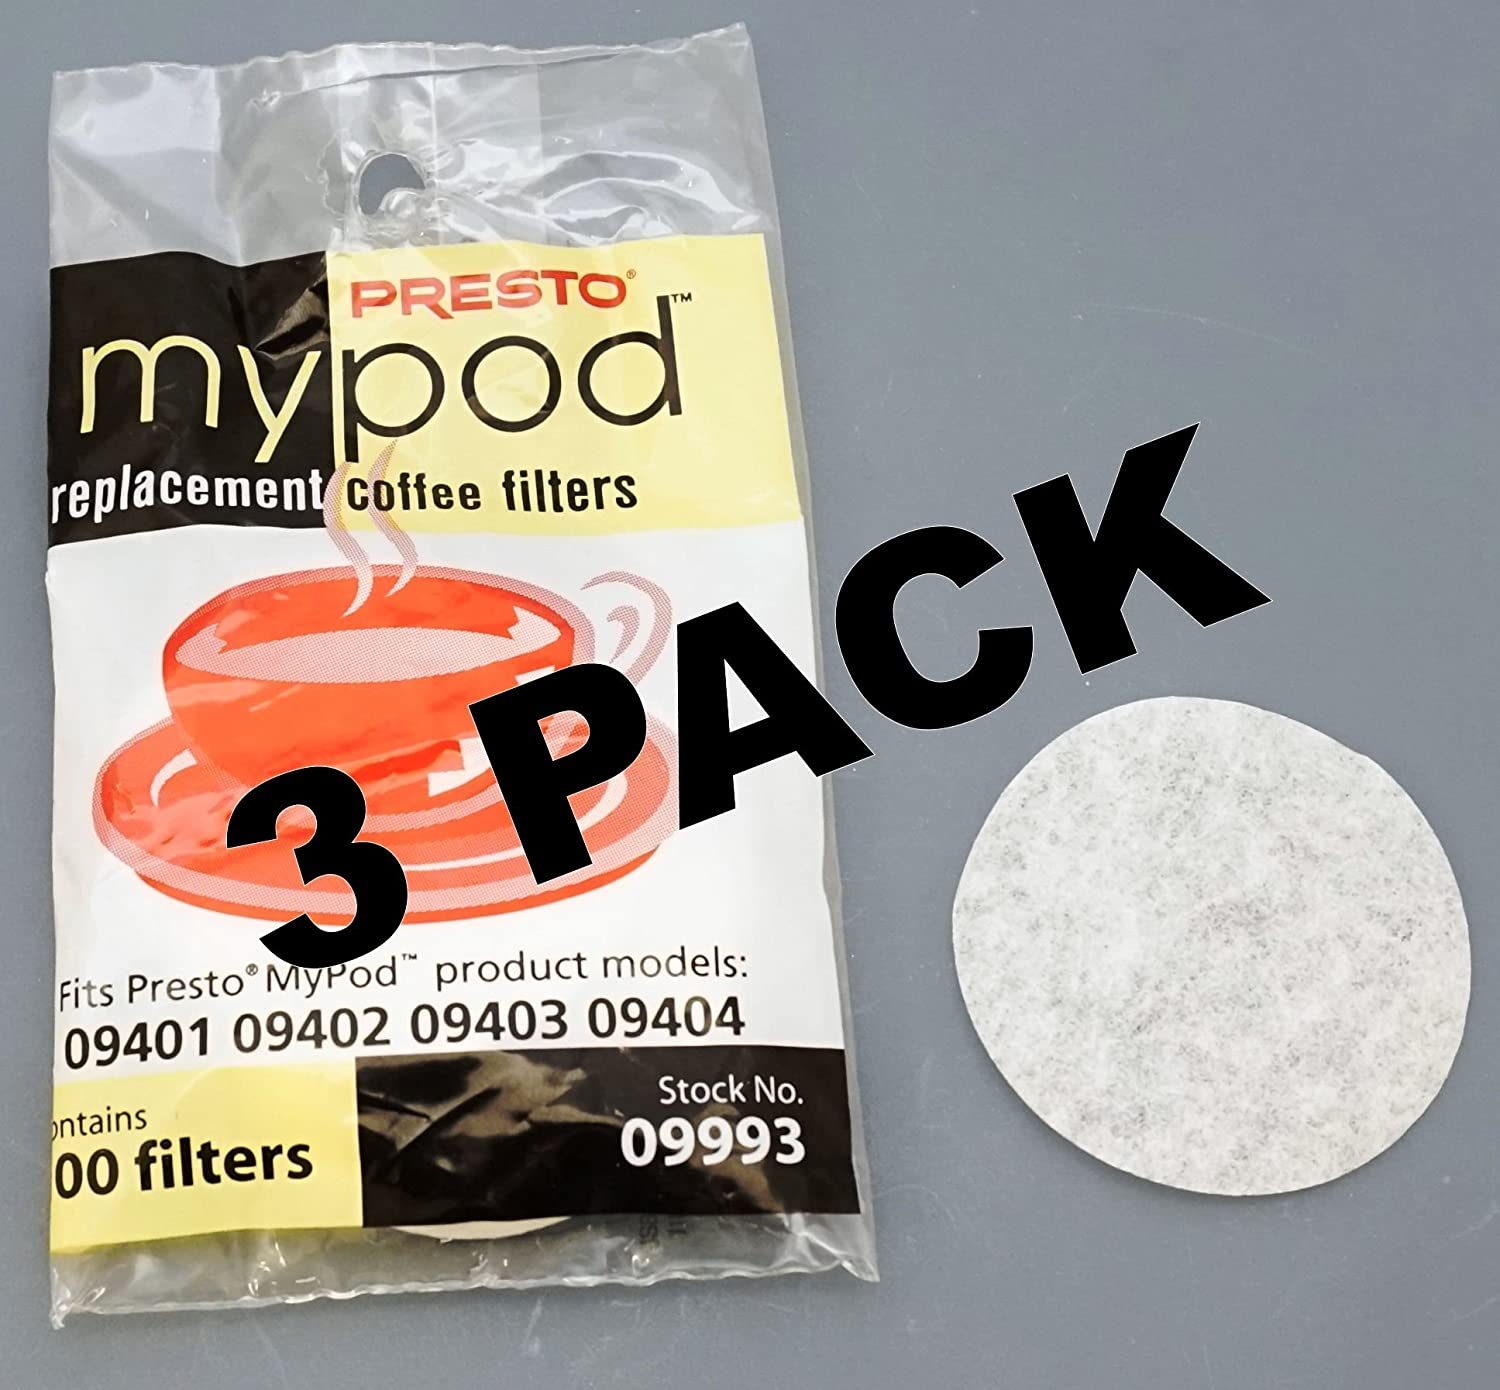 3 Pk Limited free time trial price Presto MyPod Replacement 100 09993 ct Filters Coffee